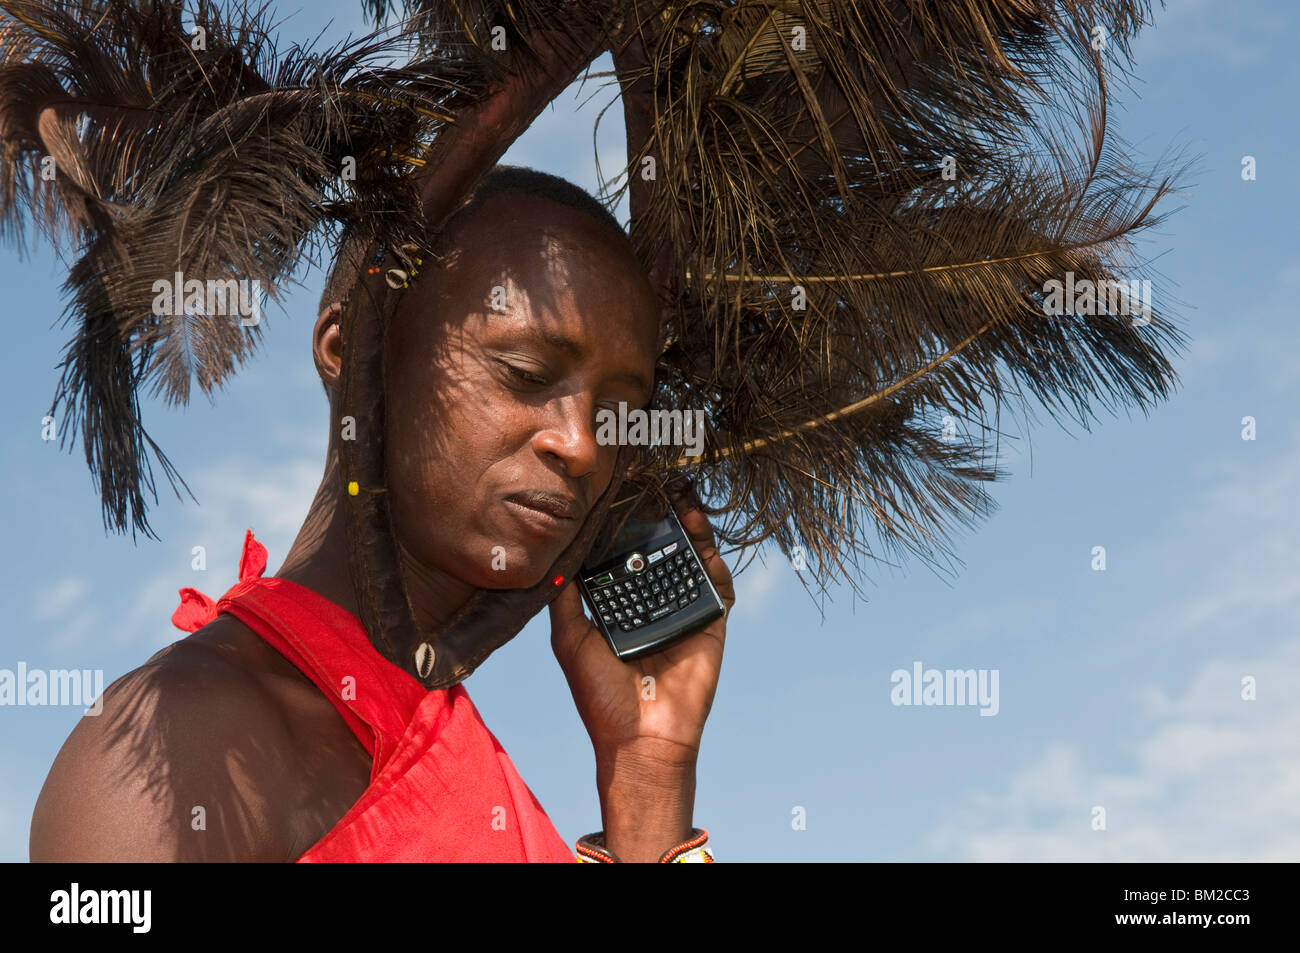 Masai man talking on mobile phone, Masai Mara, Kenya, East Africa - Stock Image